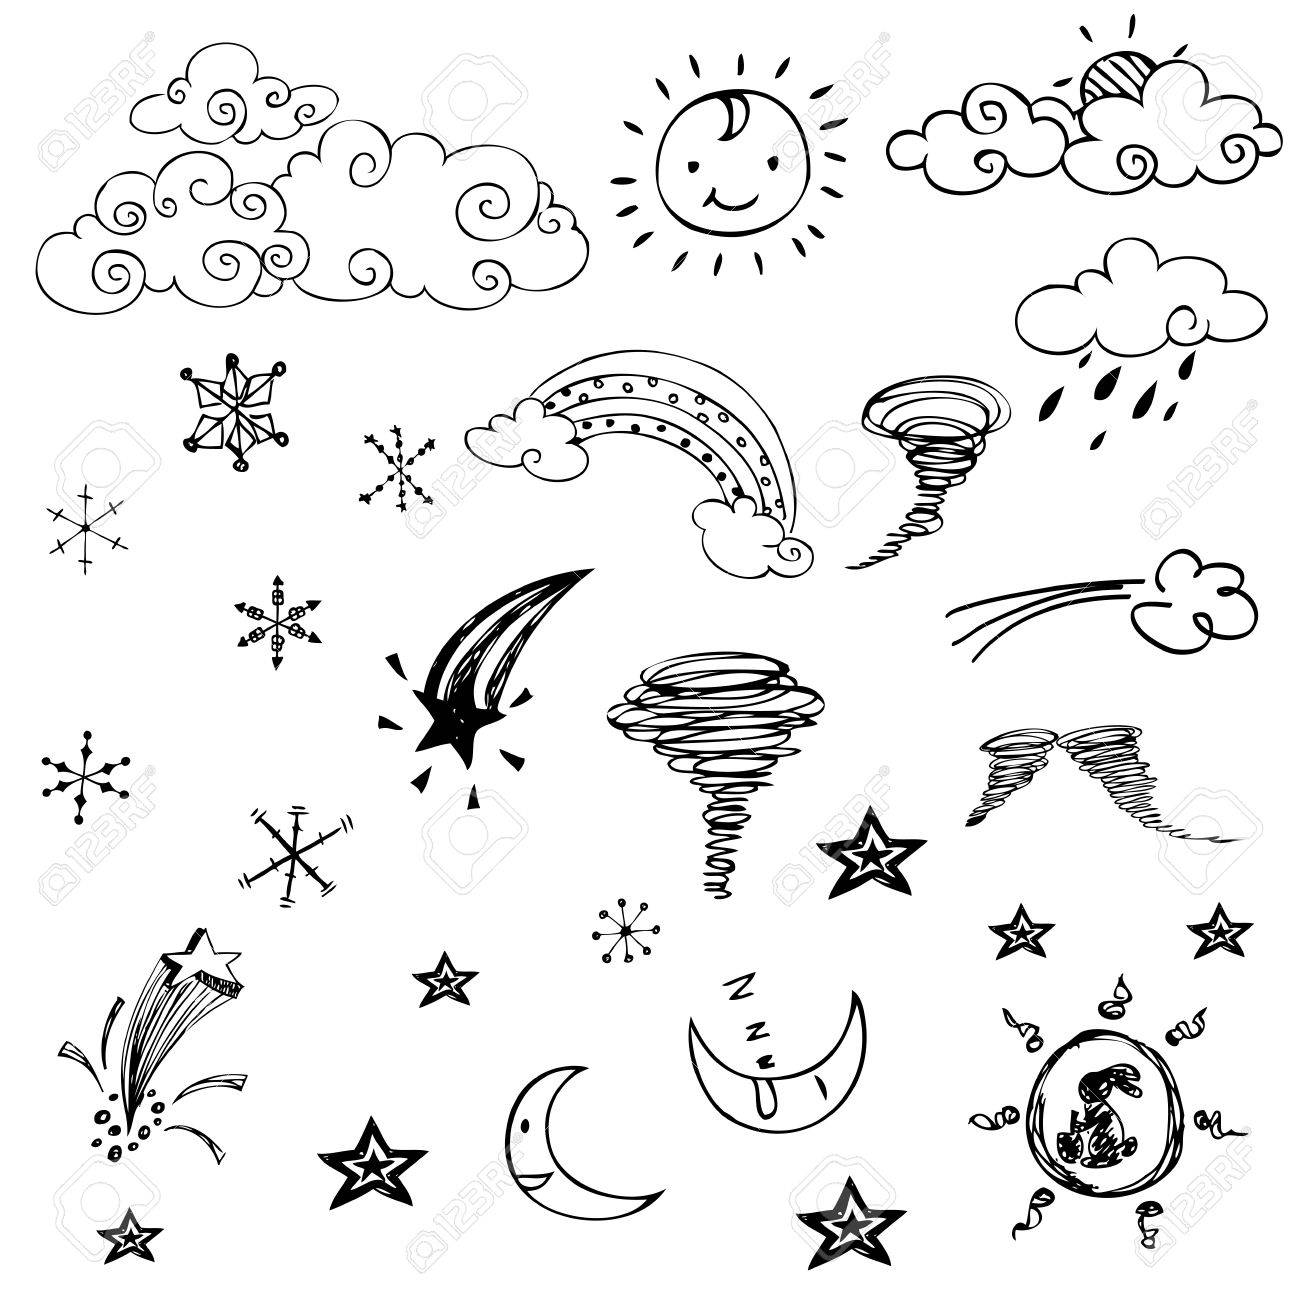 Free Drawing Of Weather Symbols On White Background Royalty Free ...